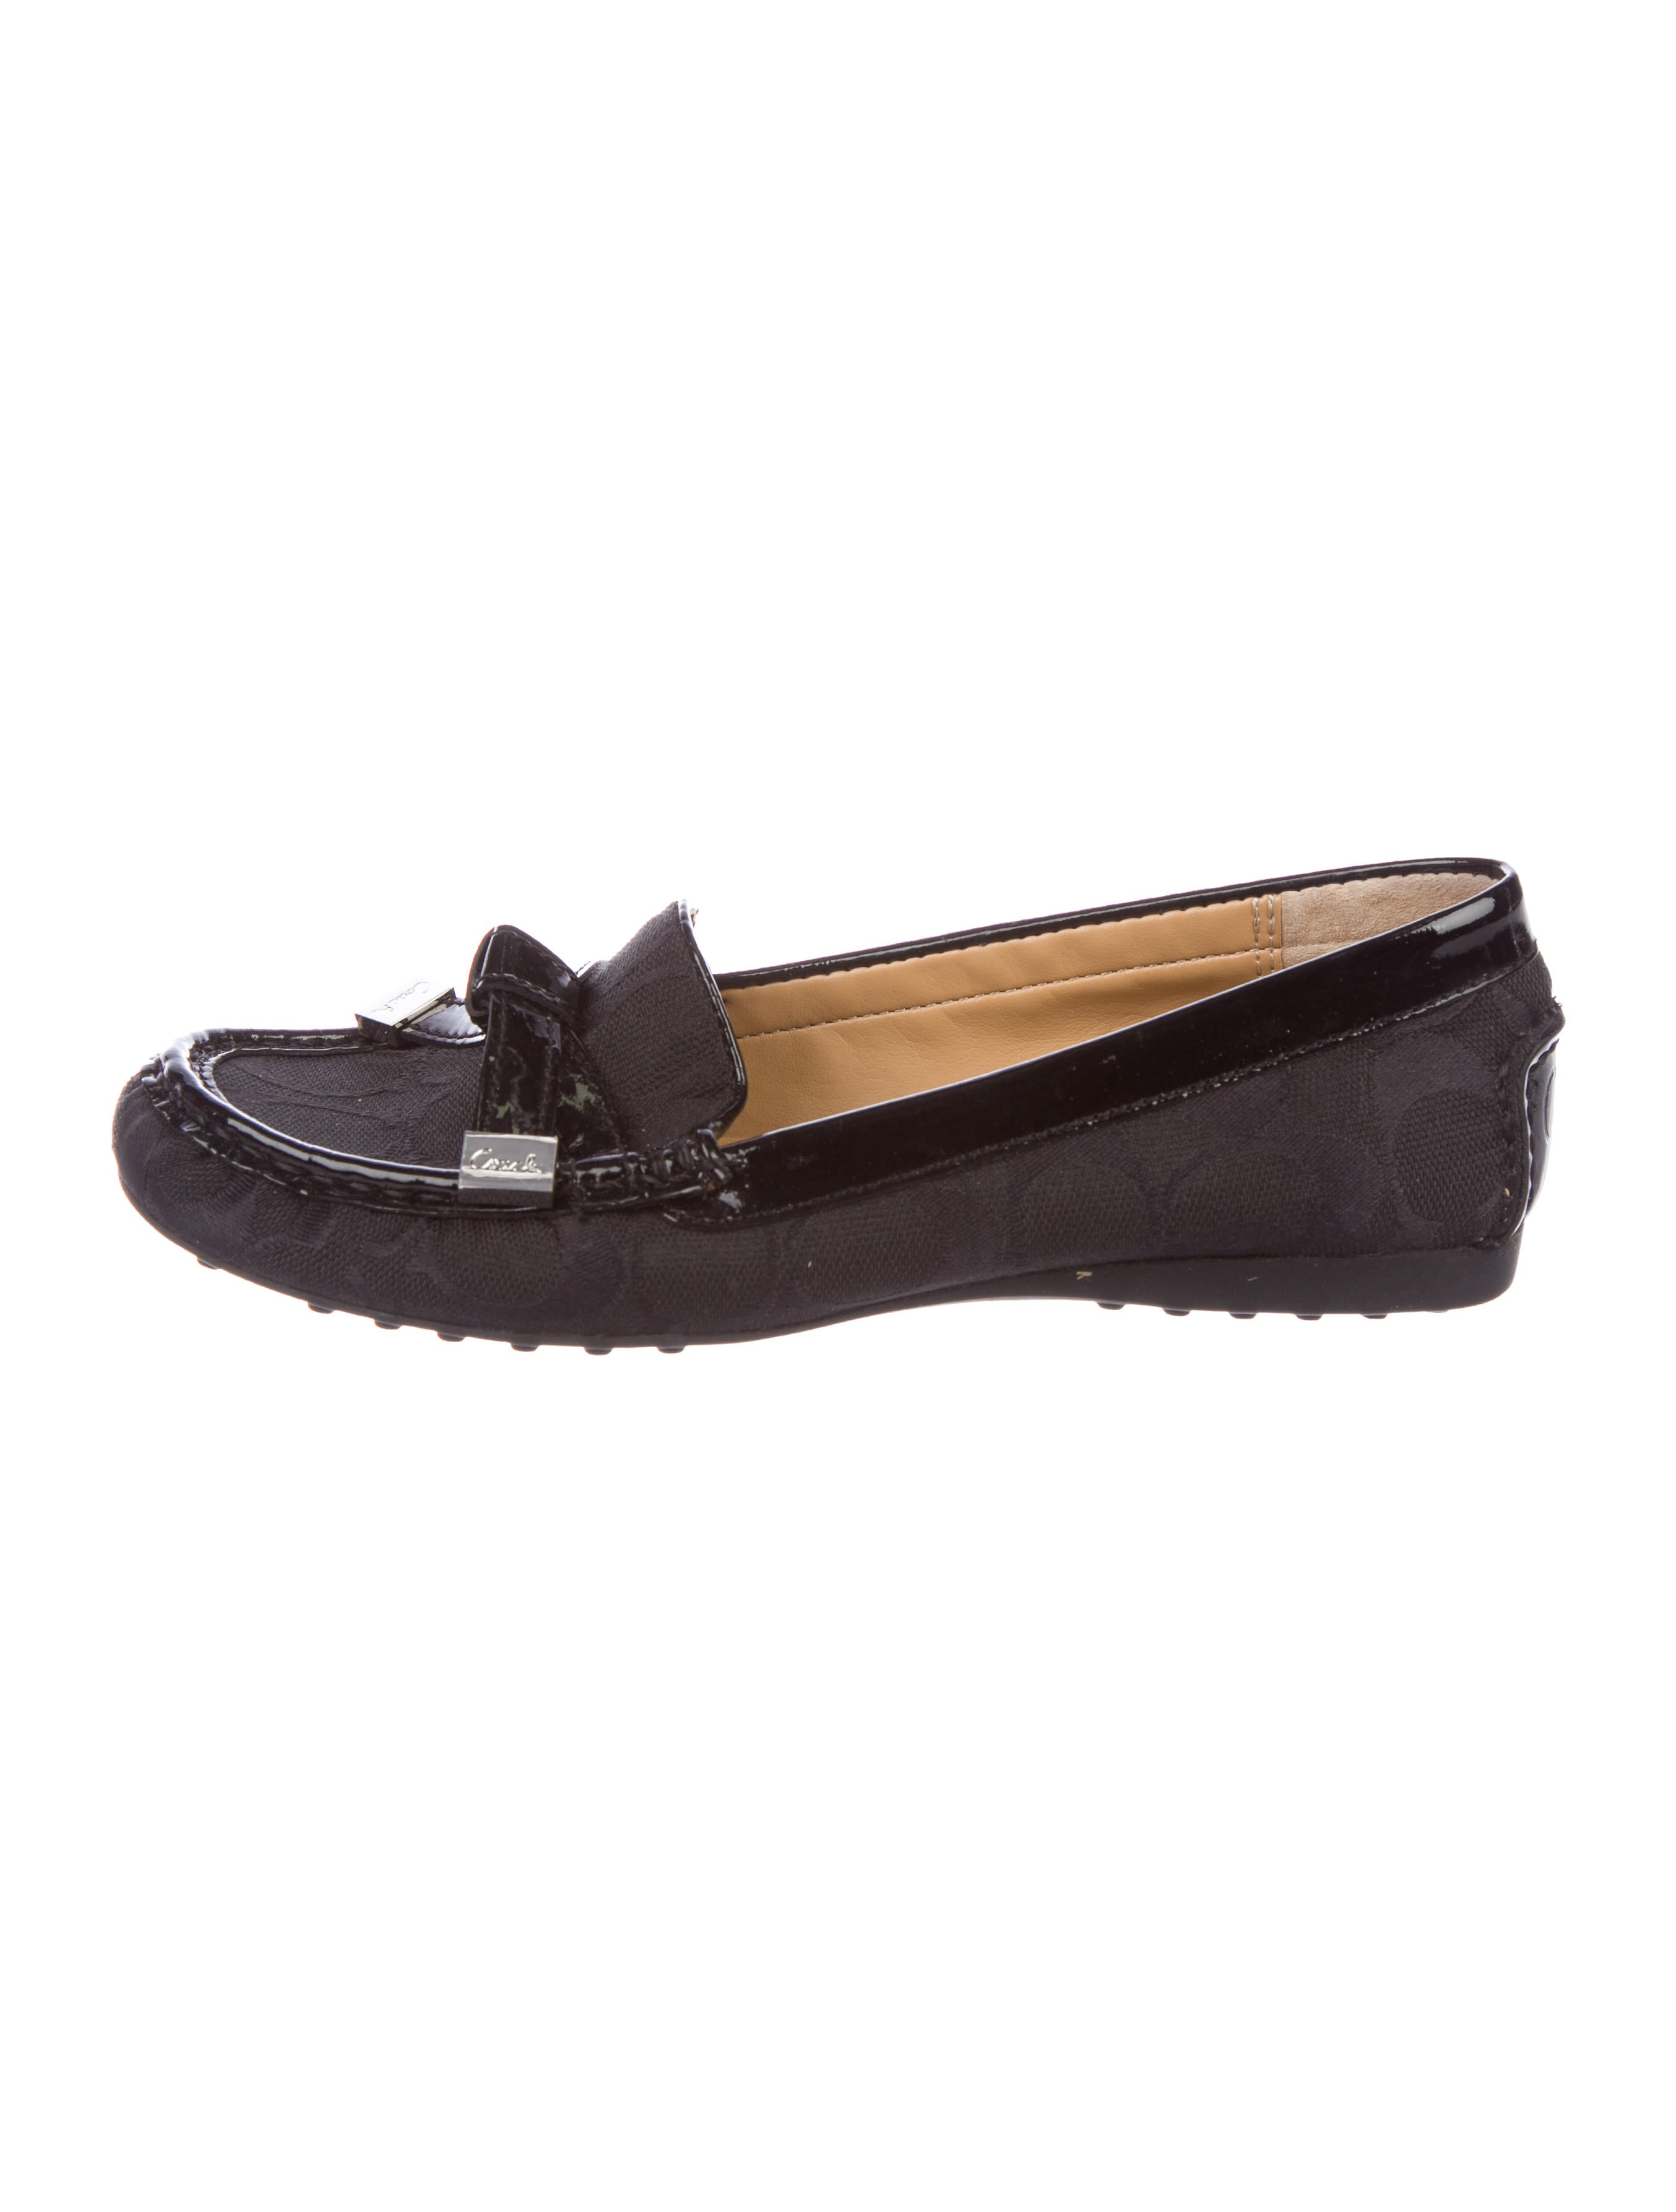 Coach Bow Round-Toe Loafers clearance 2014 new wzA8uY